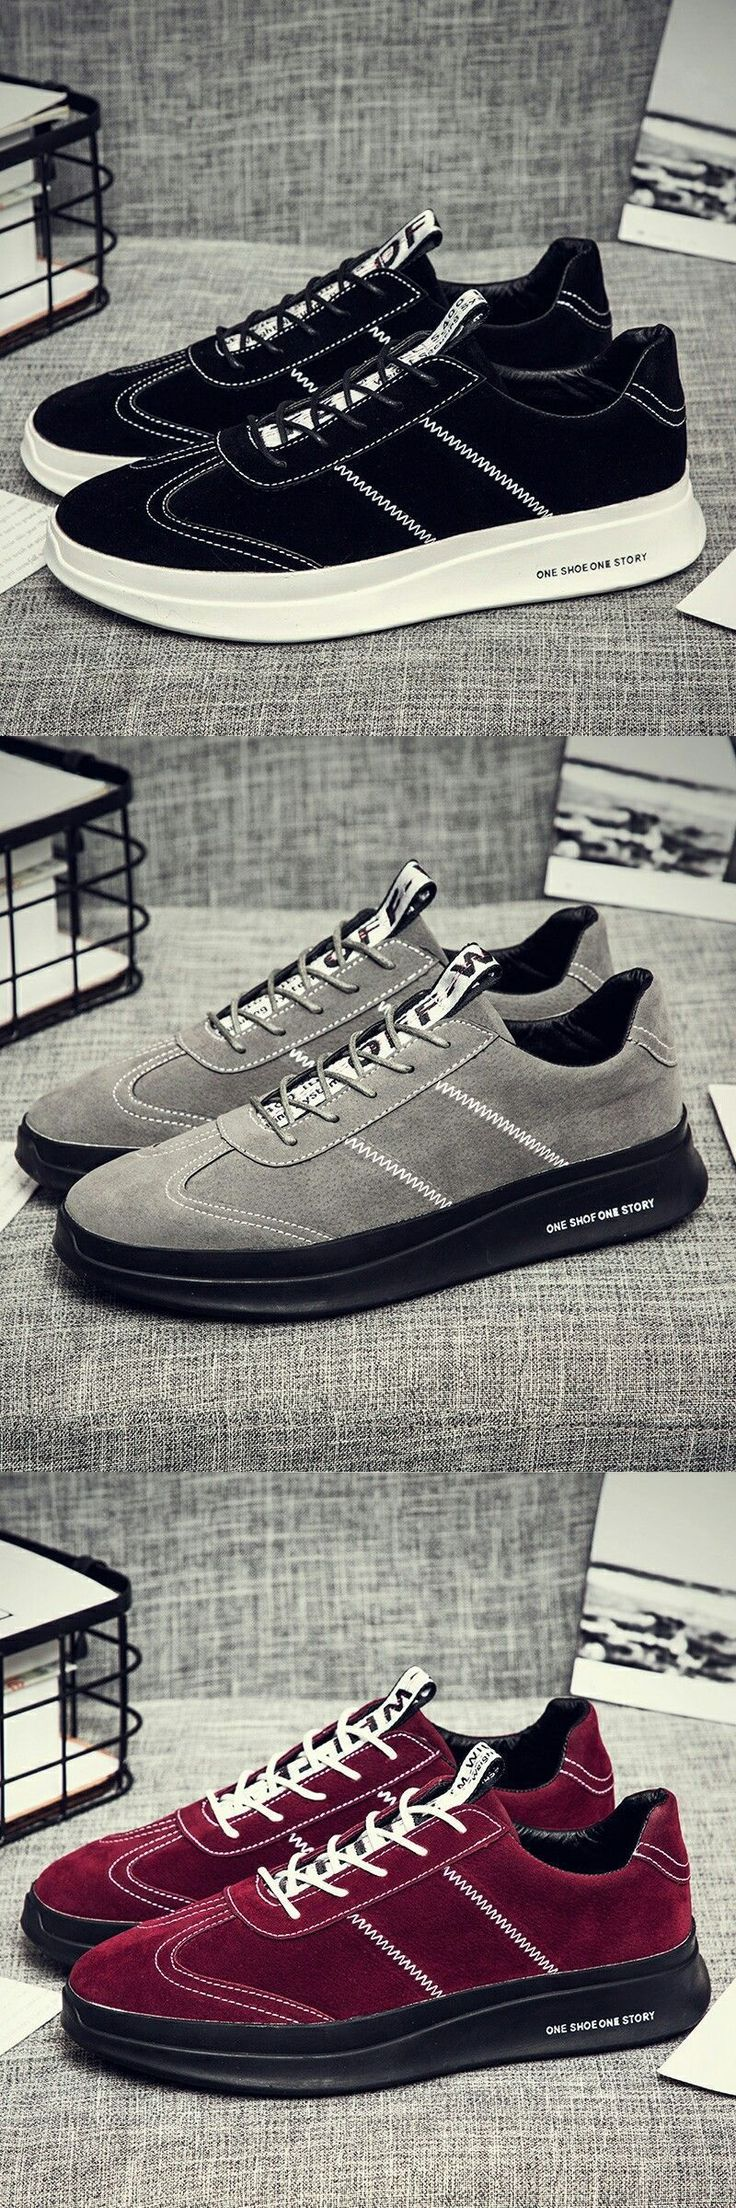 US $ Autumn Men Trainers Sneaker Casual Height Increasing - https://sorihe.com/mensshoes/2018/02/15/us-autumn-men-trainers-sneaker-casual-height-increasing-2/ #casualsneakers